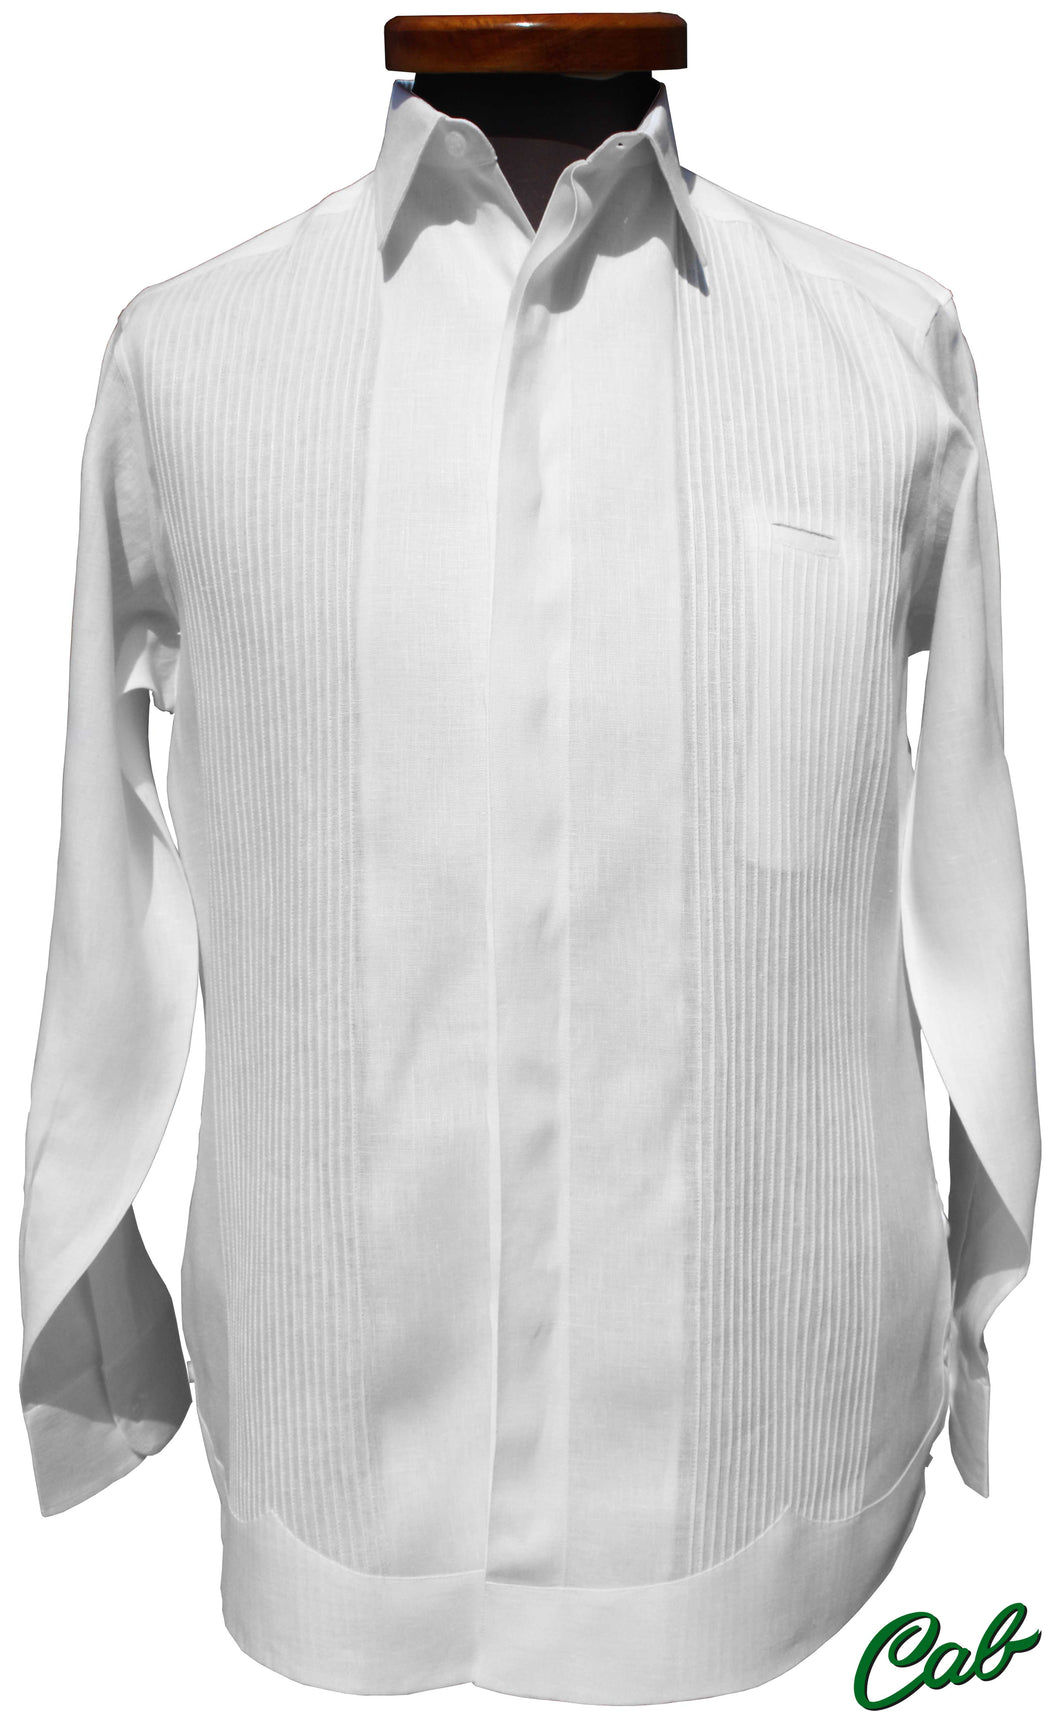 Guayaberas finas Cab. Linen mexican wedding shirts. Guayabera formal.